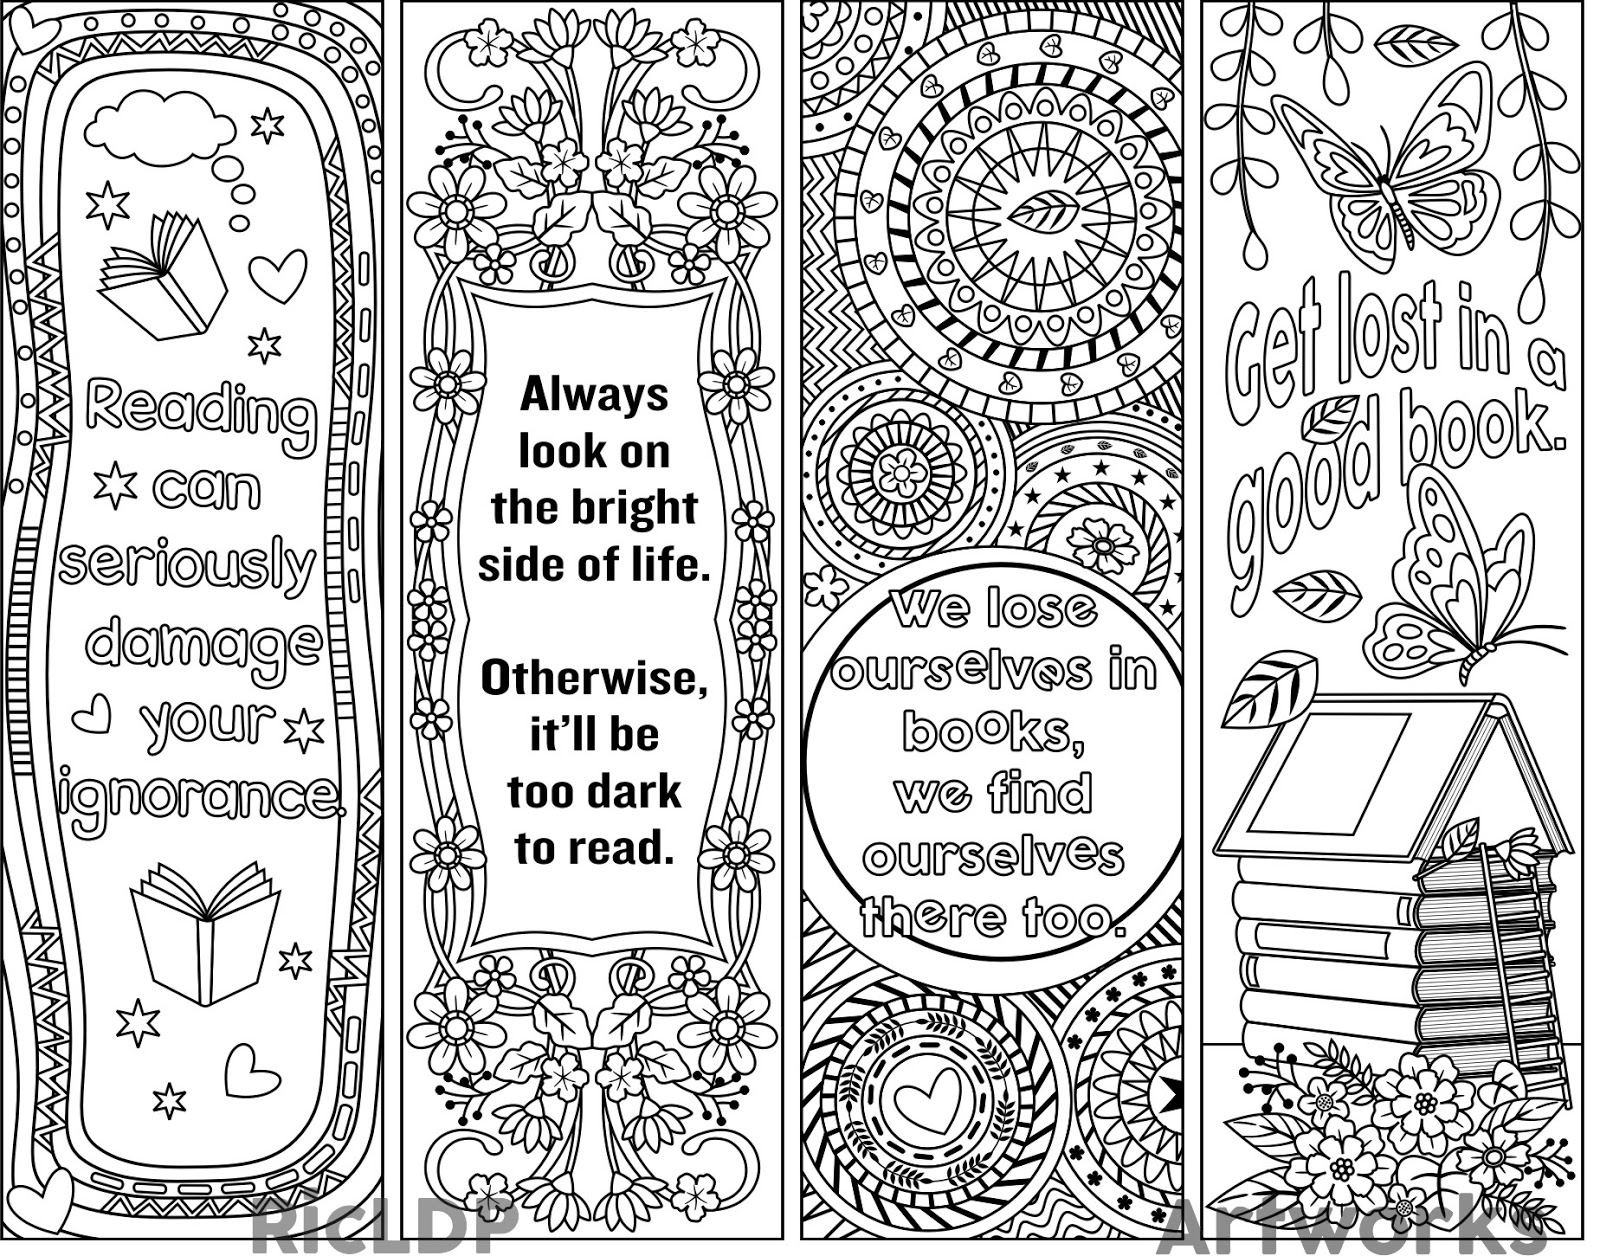 RicLDP Artworks: Printable Coloring Bookmarks